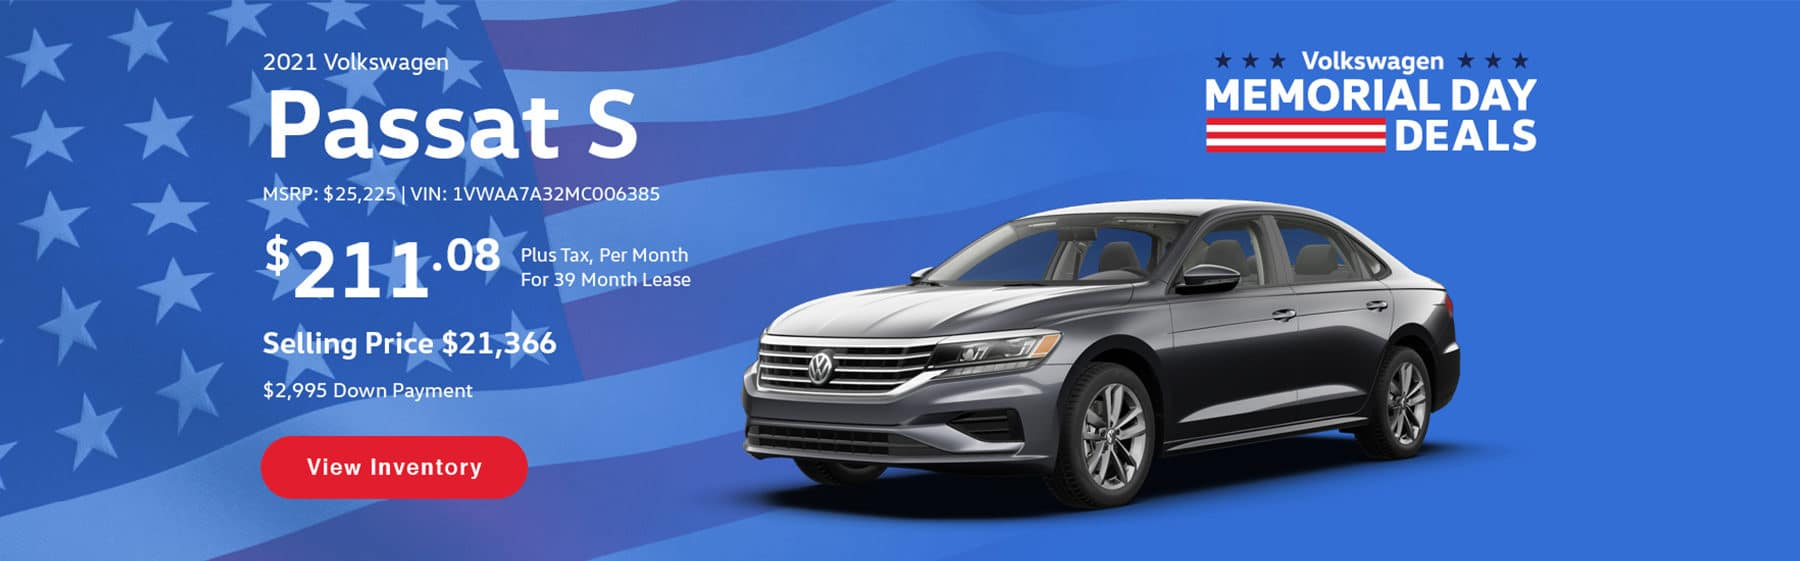 Lease the 2021 Volkswagen Passat S for $211.08 per month, plus tax, for 39 months. Selling price is $21,366.